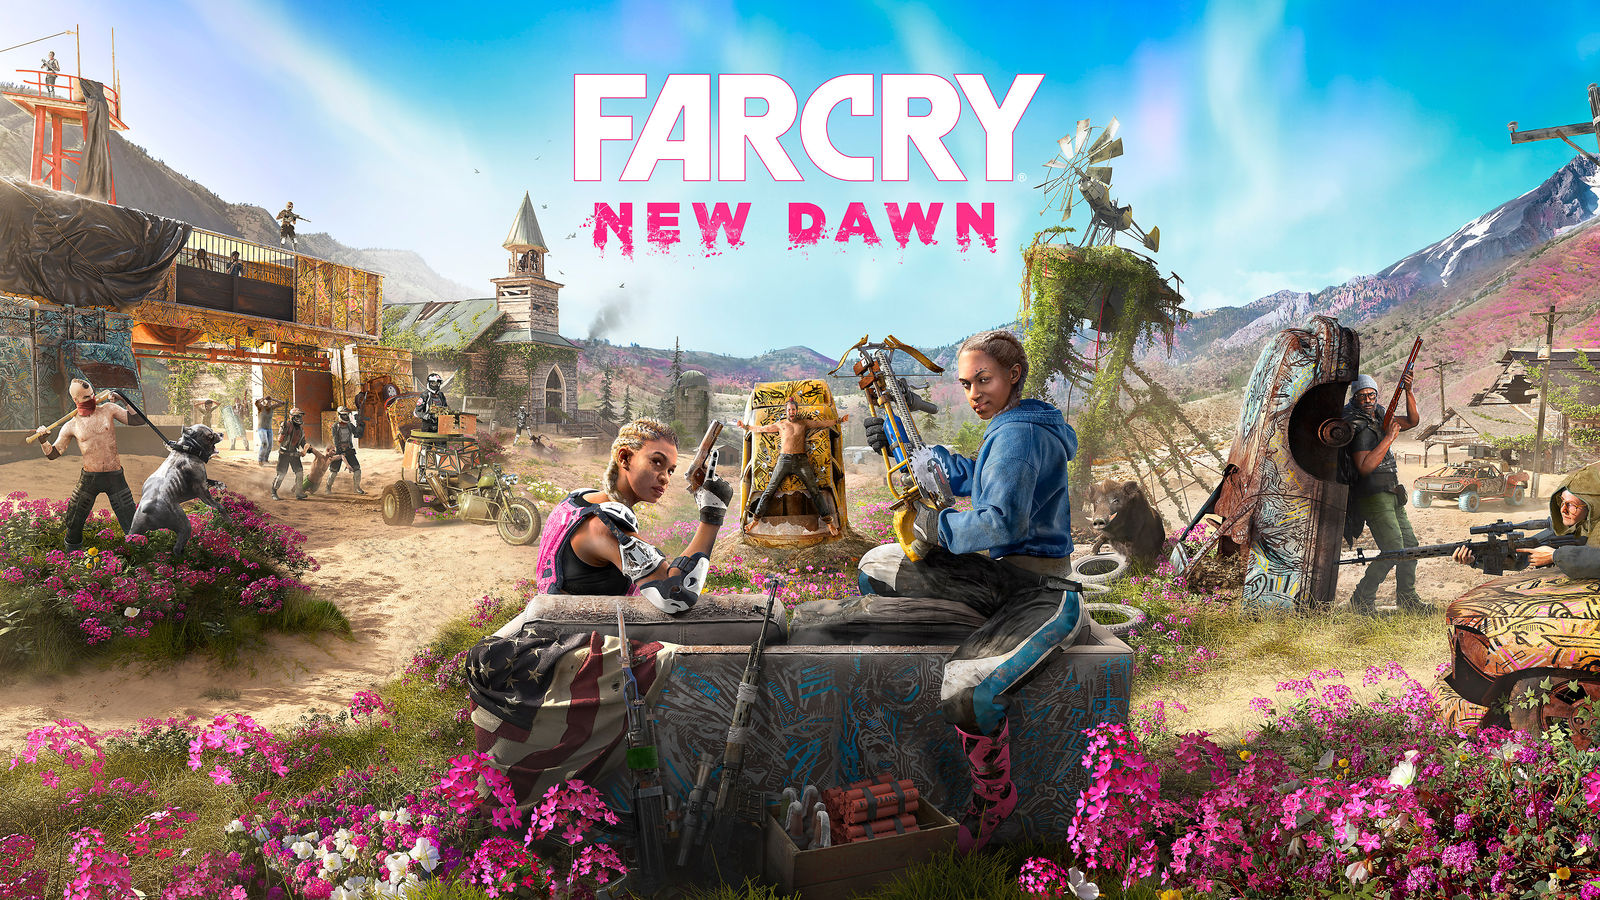 far cry new dawn (uplay) ru/cis 390 rur